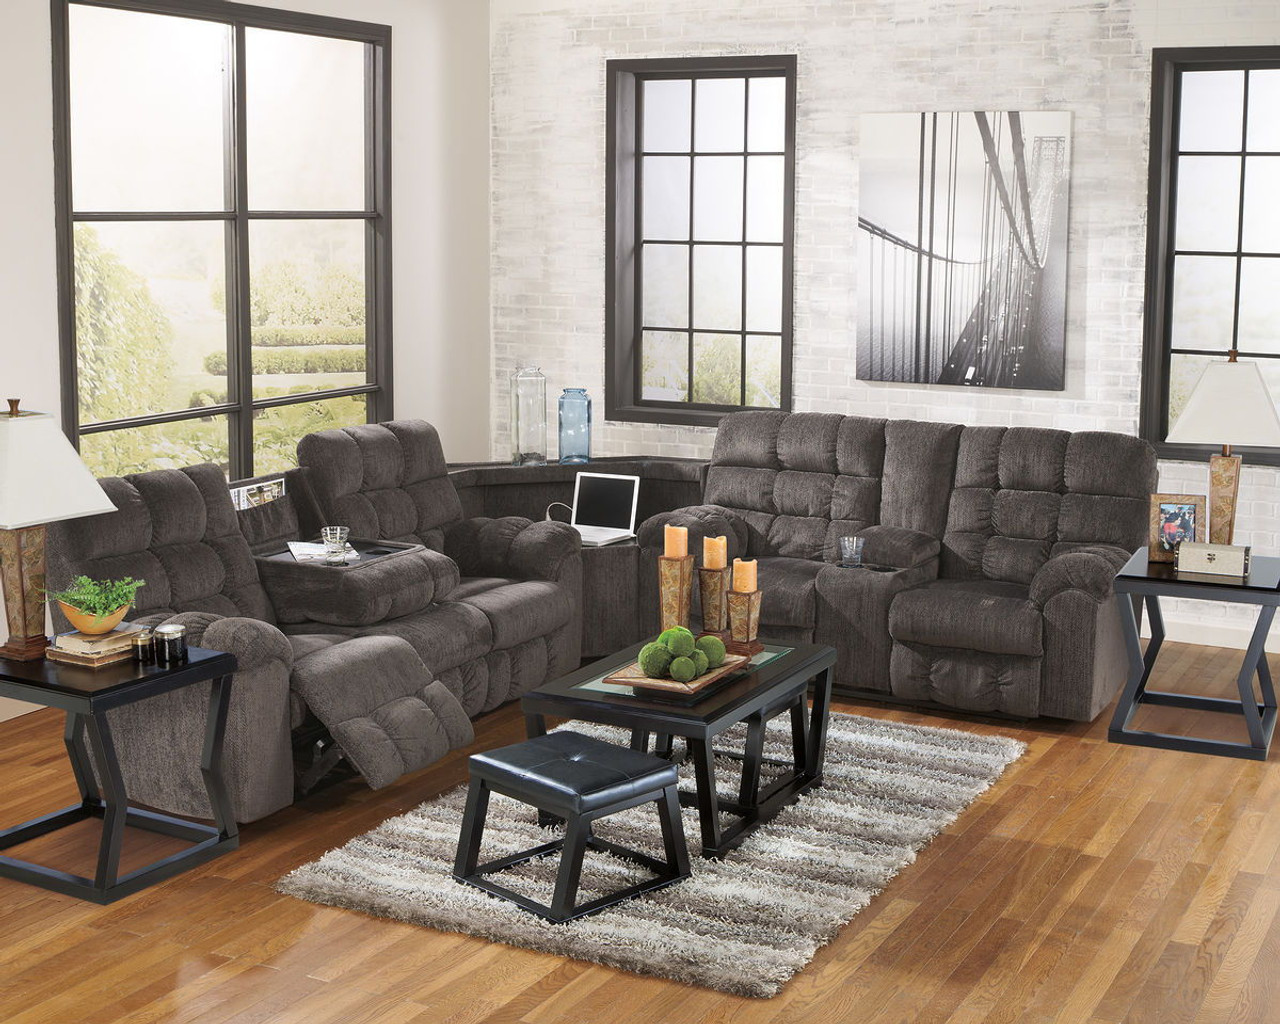 Picture of: Acieona Slate Reclining Sofa With Drop Down Table Wedge Double Rec Loveseat With Console Sectional On Sale At American Furniture Of Slidell Serving Slidell La